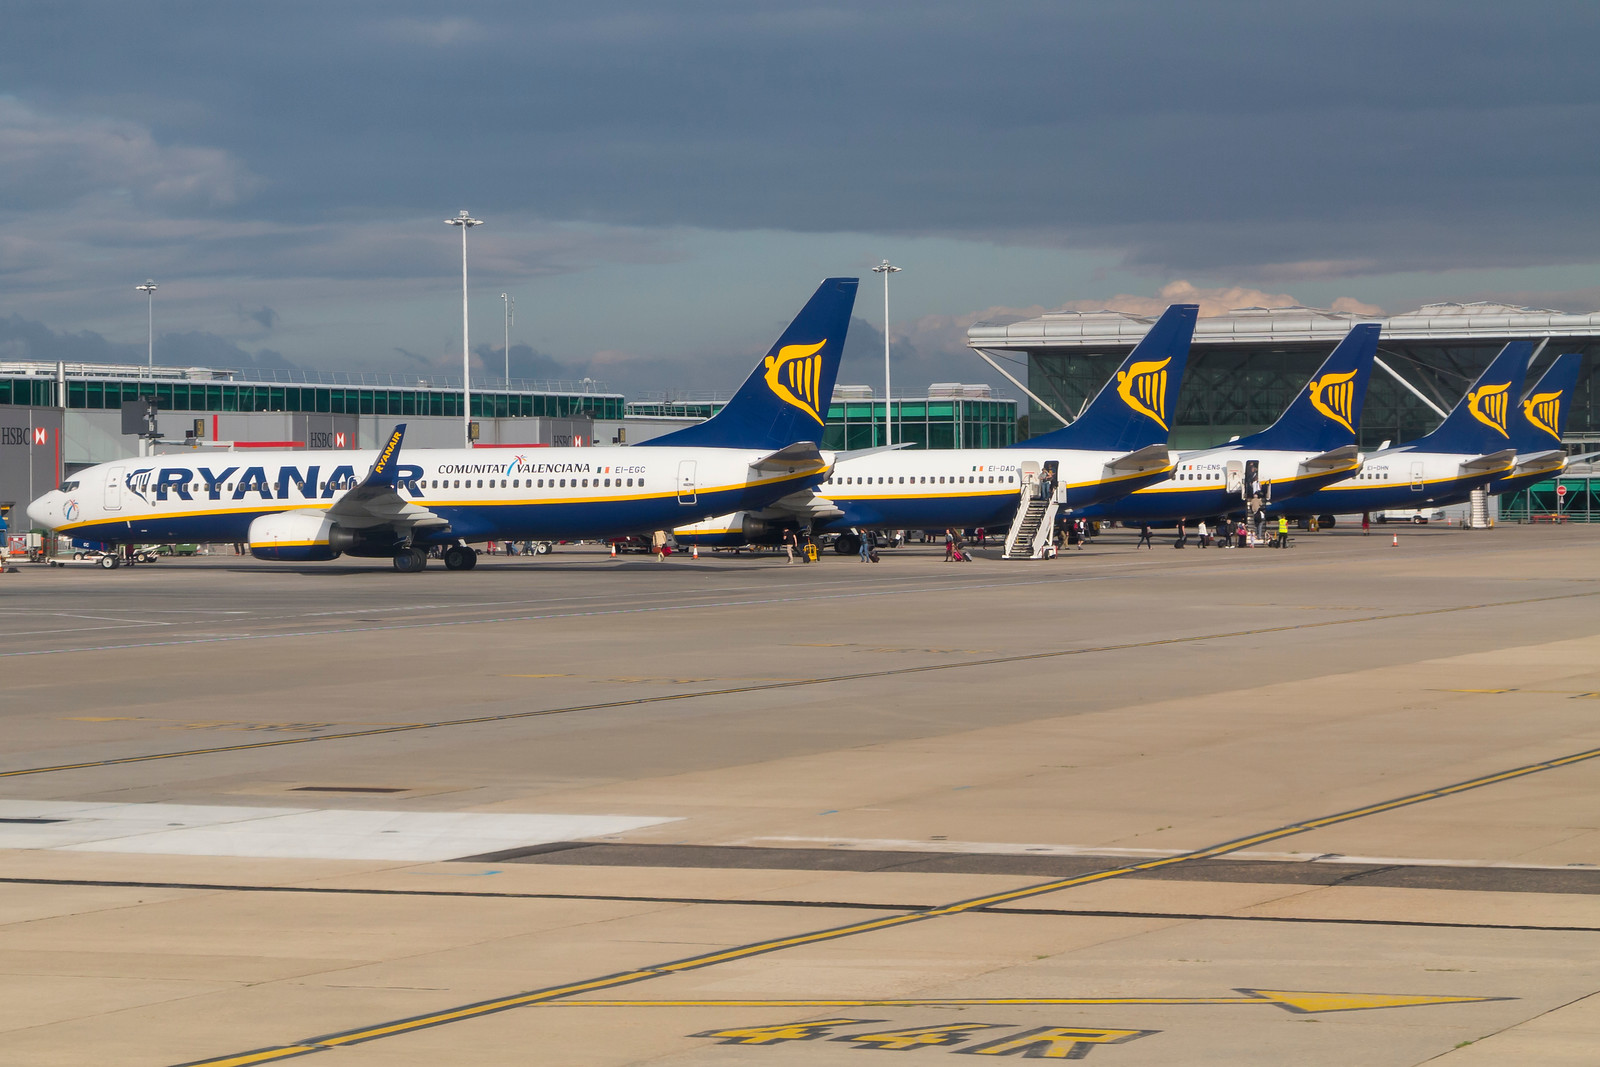 Ryanair-fly i London Stansted Airport. (Foto: © Thorbjørn Brunander Sund, Danish Aviation Photo)